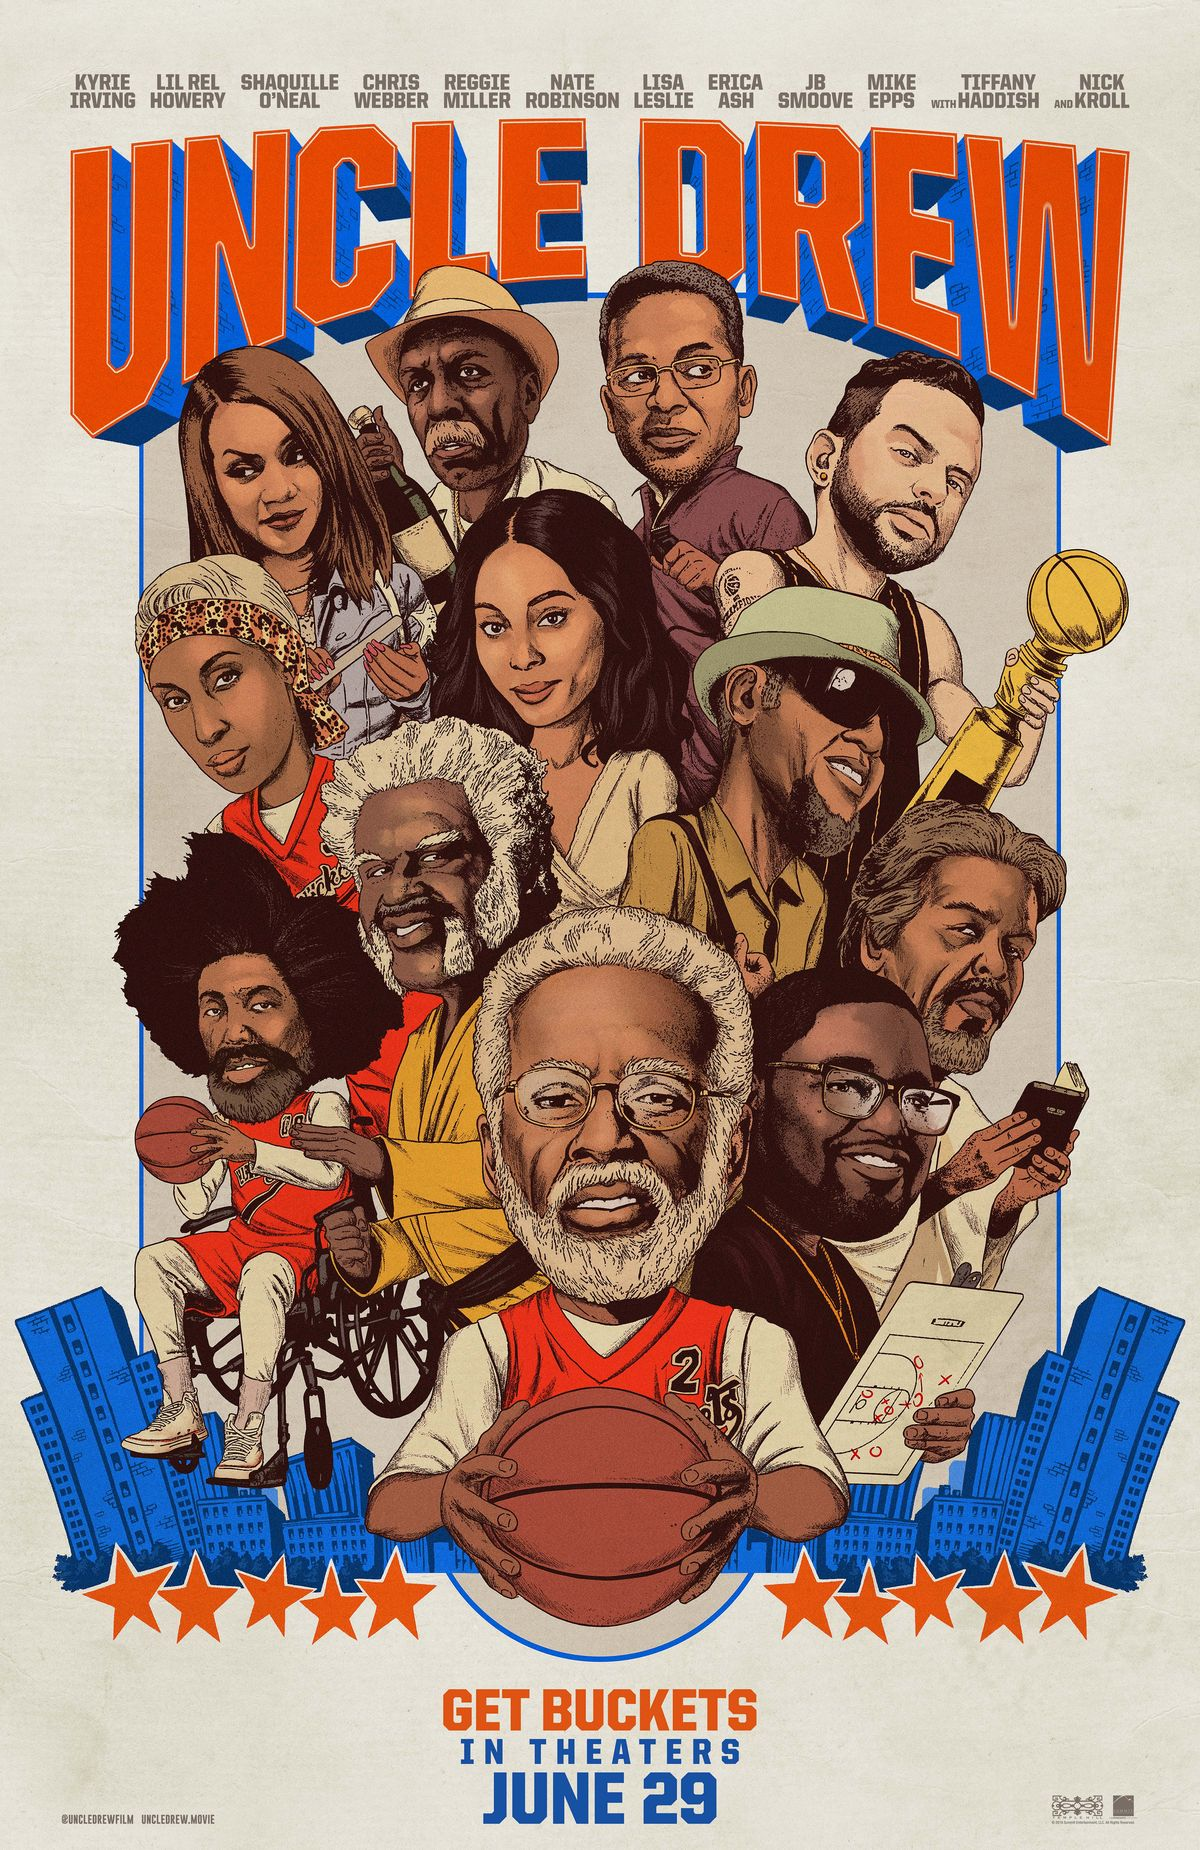 Uncle Drew (2018) - Directed by: Charles Stone IIIStarring: Kyrie Irving, Lil Rel Howery, Shaquille O'NealRated: PG-13 for Suggestive Material, Language and Brief NudityRunning Time: 1 h 43 mTMM Score: 1.5 stars out of 5STRENGTHS: It Knows It's StupidWEAKNESSES: It's Stupid, One-Note Joke, Predictable Script